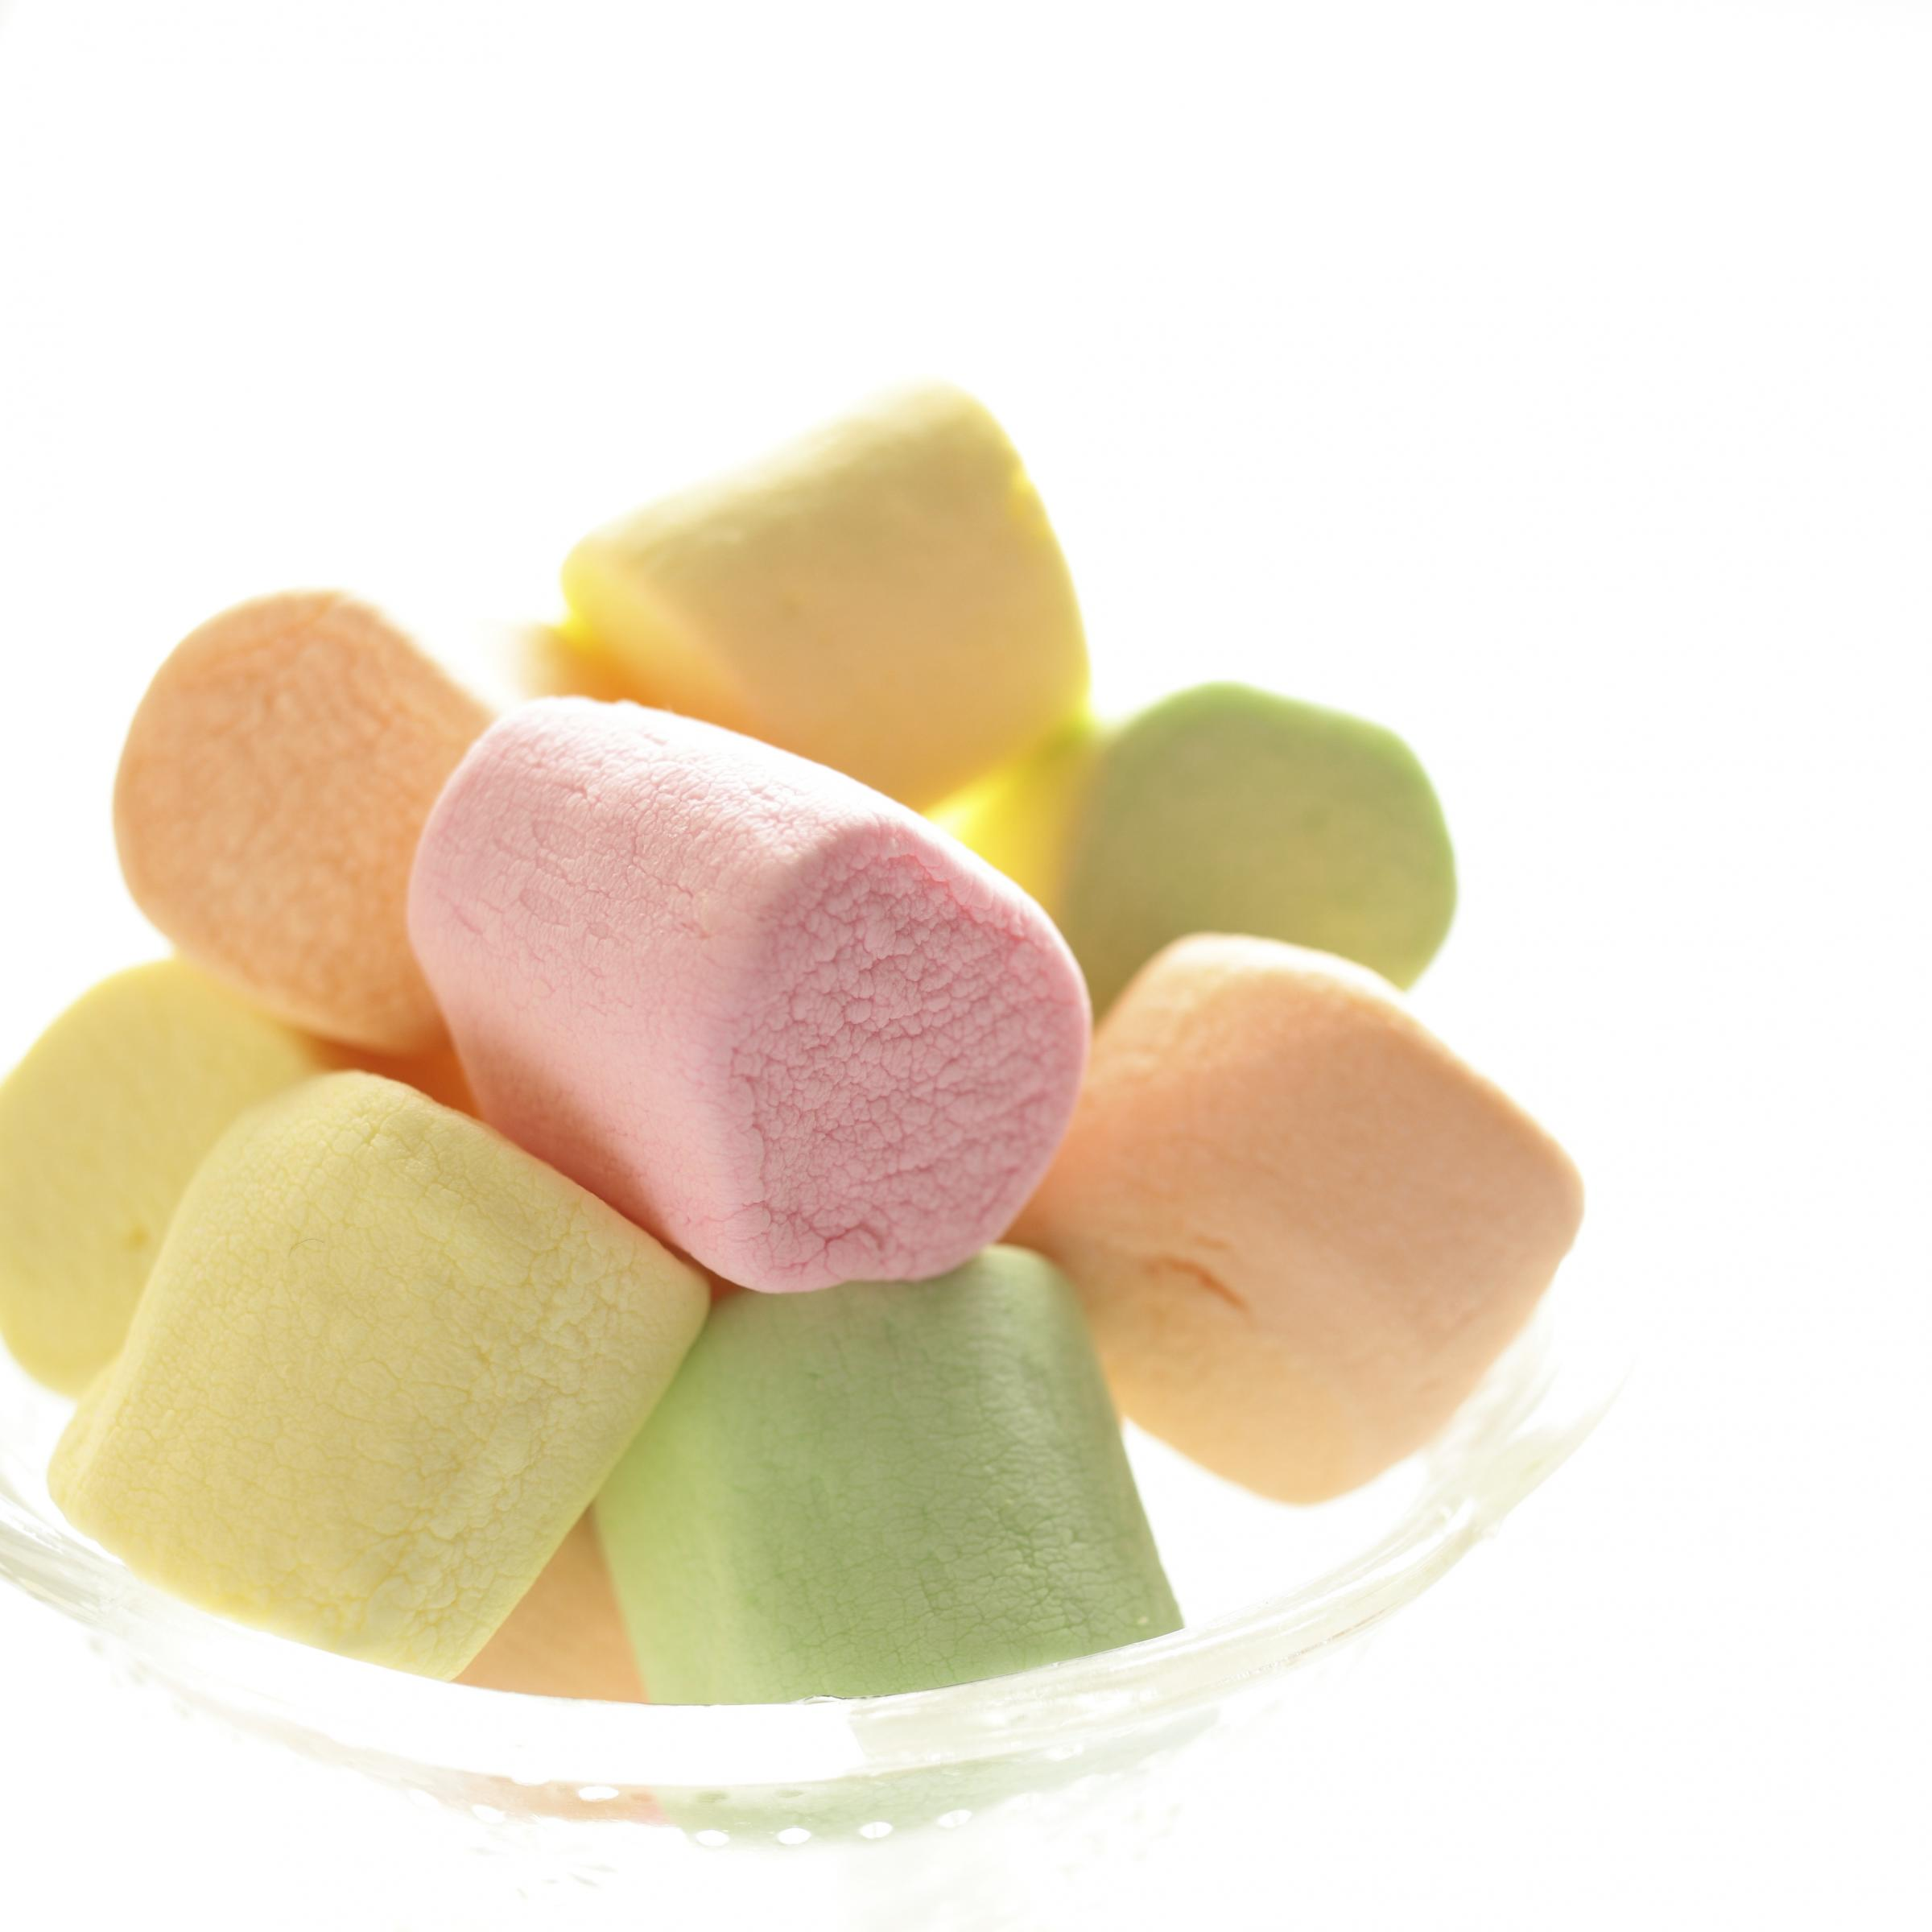 Competition to design a new flavour of marshmallow